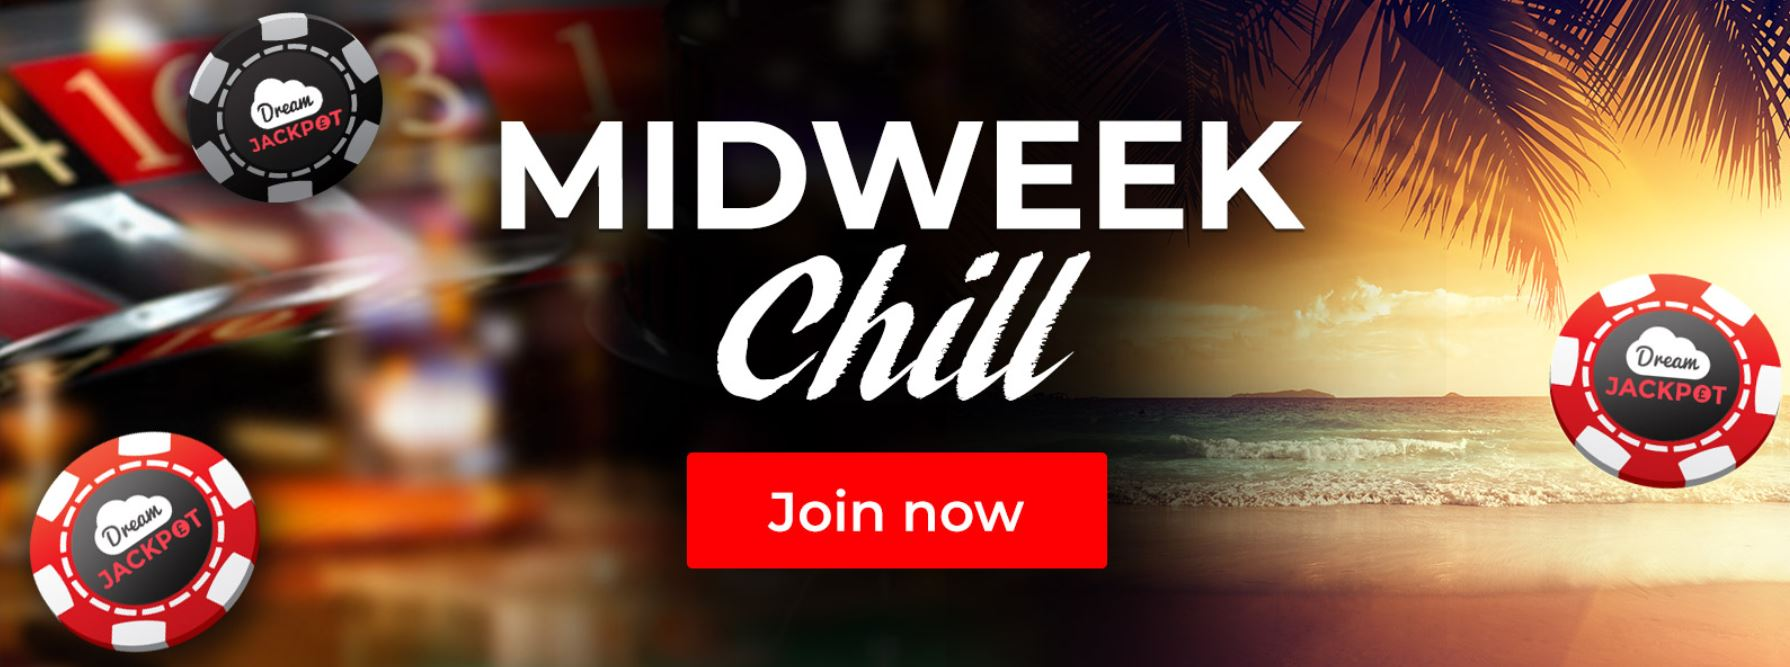 Enjoy A Midweek Chill At Dream Jackpot Casivo Uk